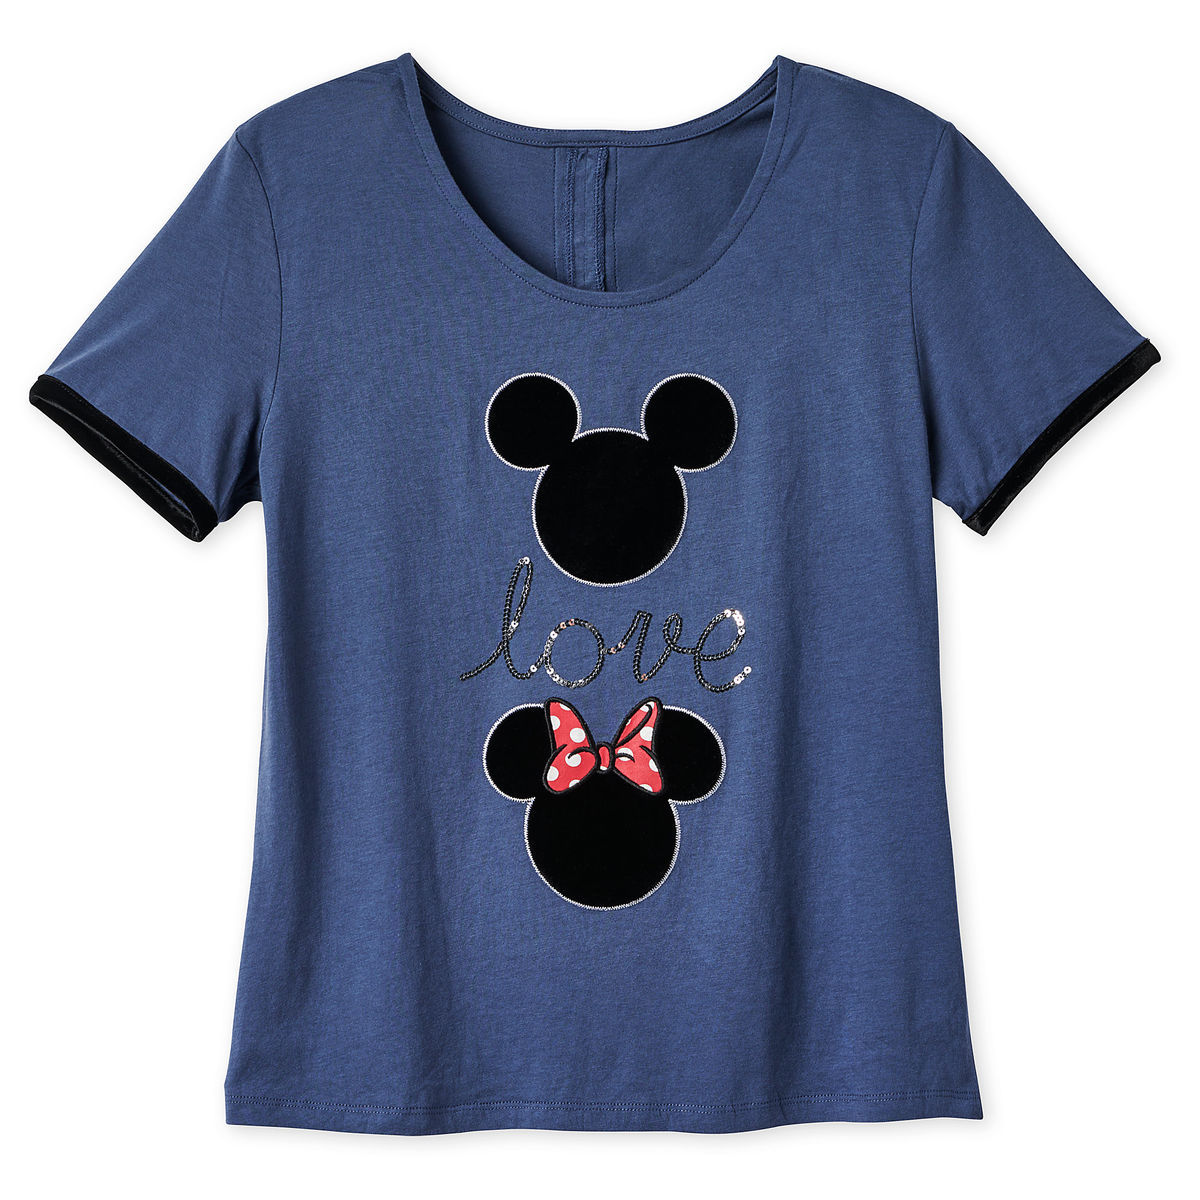 Product Image of Mickey and Minnie Mouse Icon Fashion T-Shirt for Women # 1